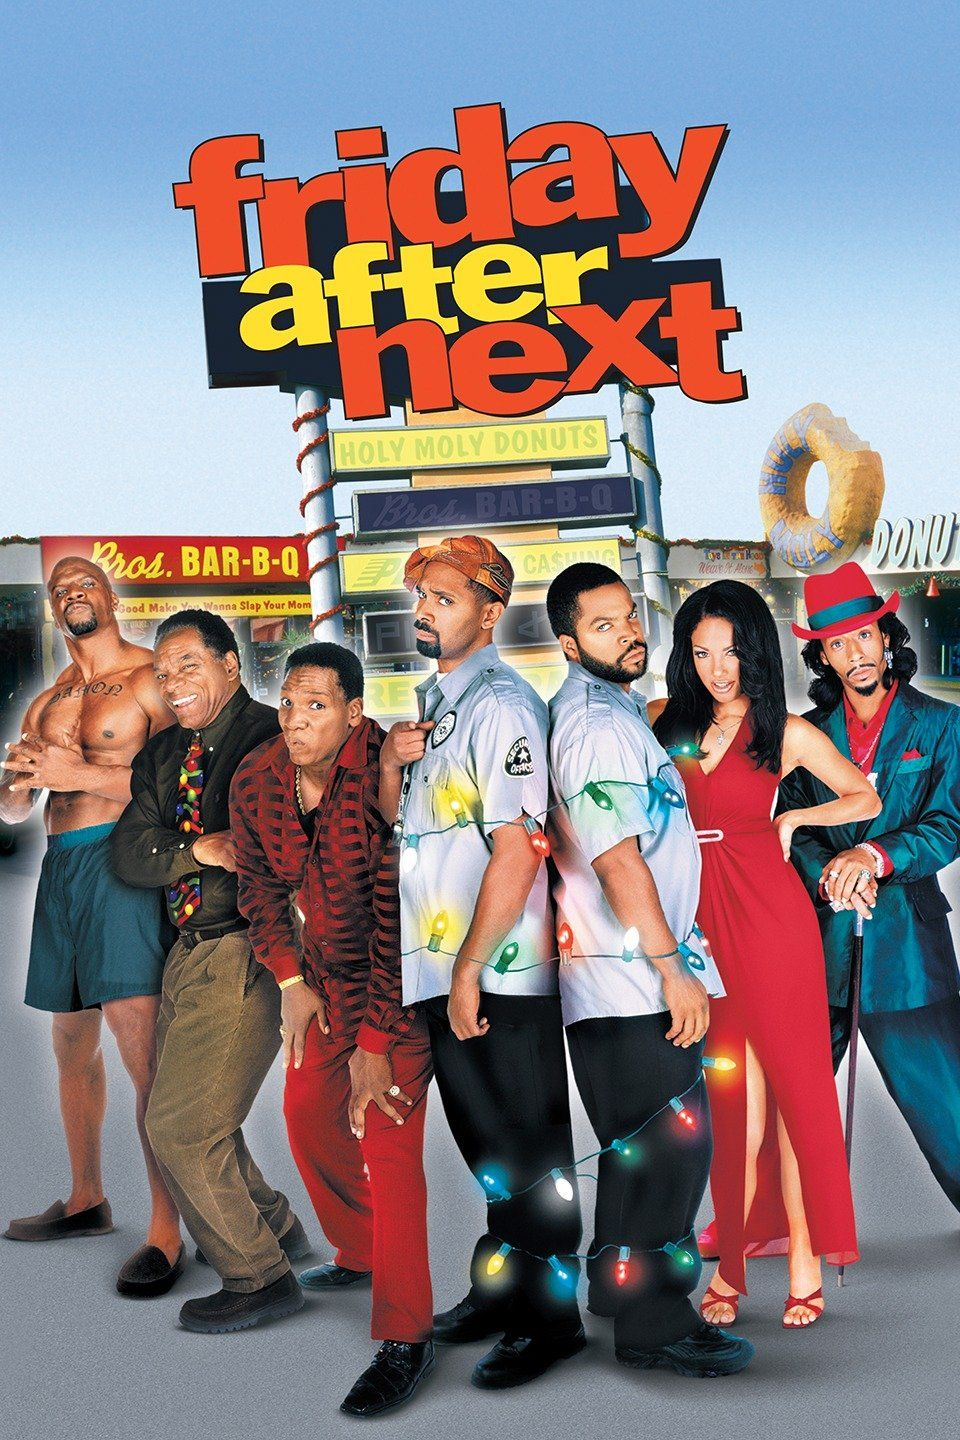 friday after next full movie download